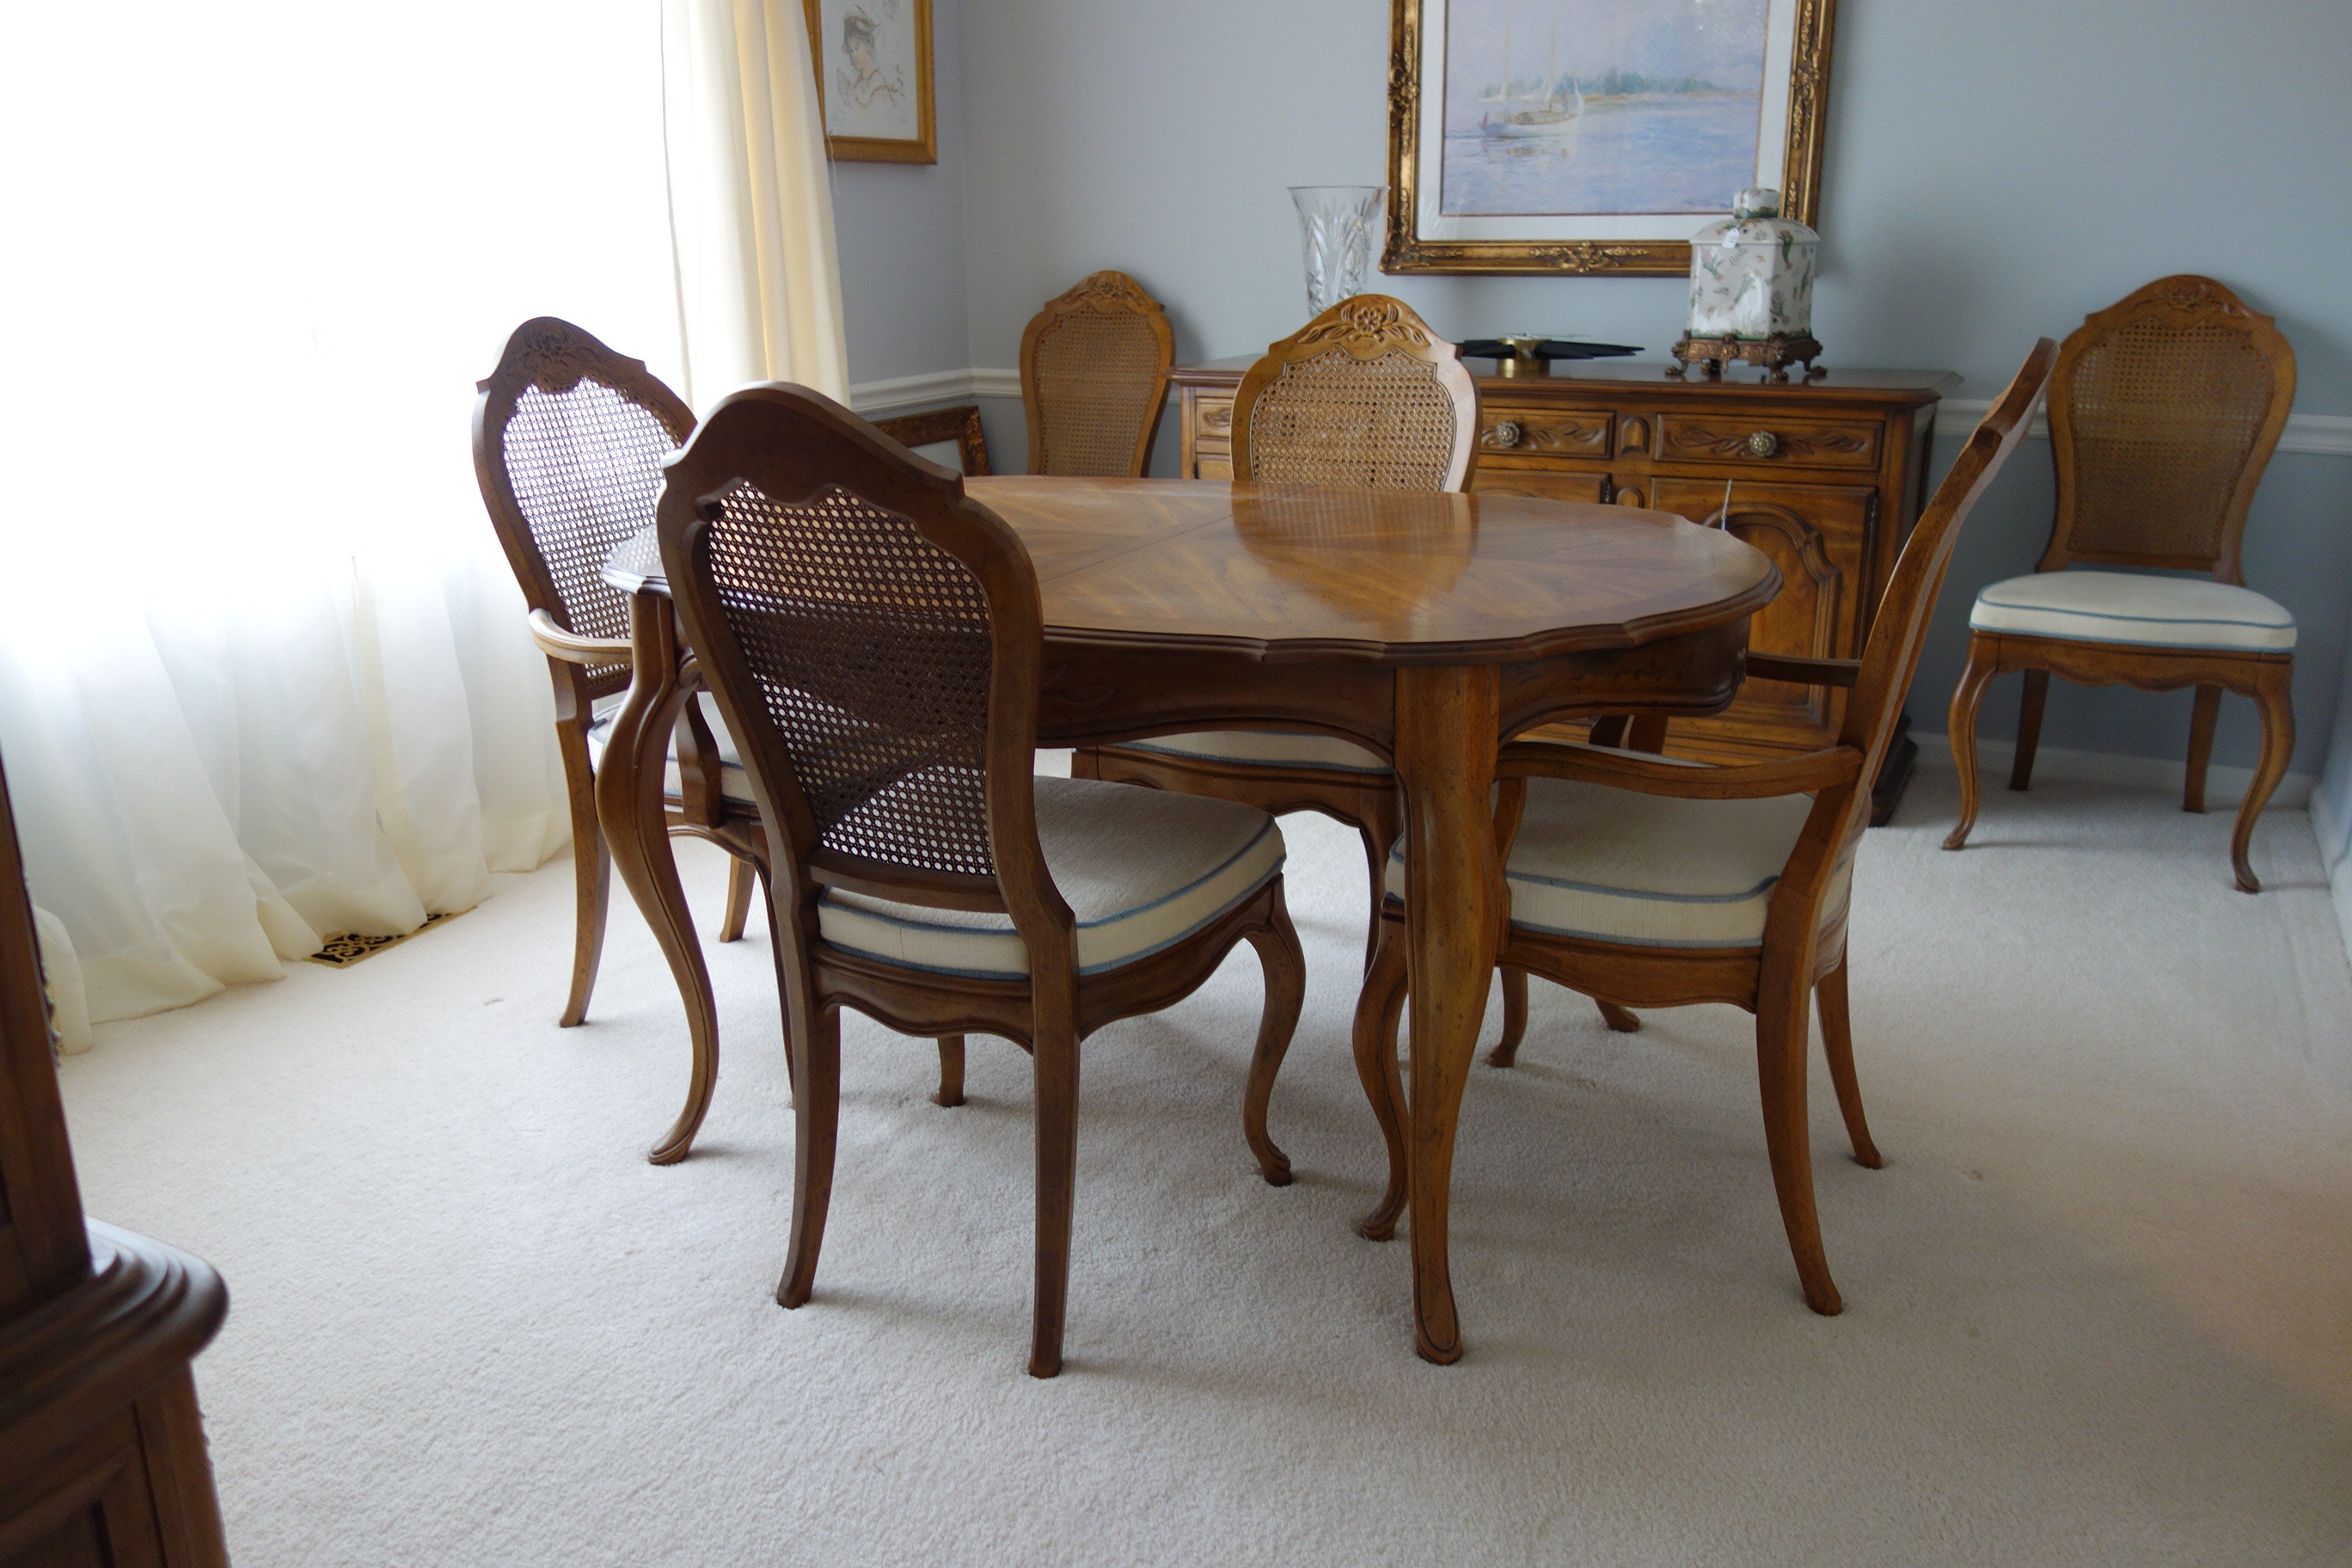 Drexel French Provincial Style Dining Table and Six Chairs EBTH